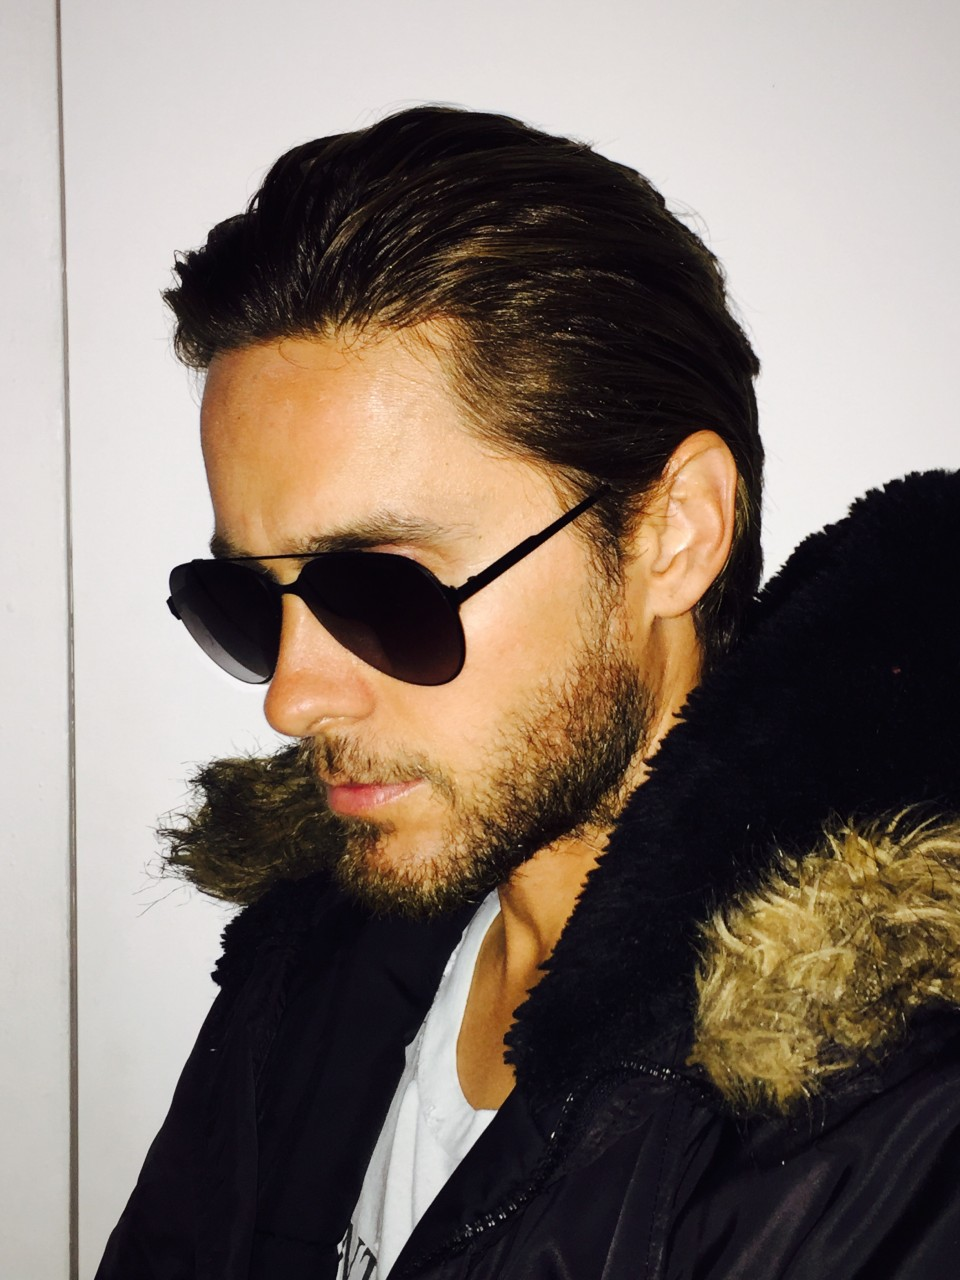 f3632de8c8 Jared Leto Is The Face Of New Carrera Campaign